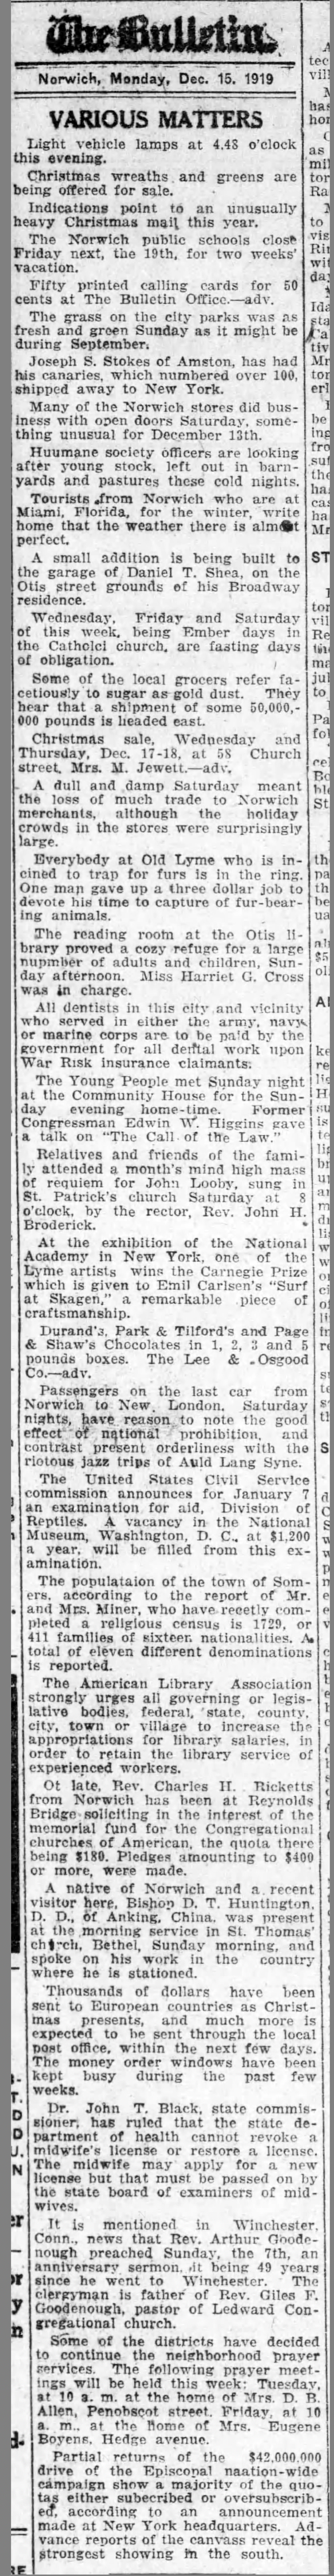 """Norwich Bulletin, Norwich, CT, """"Various matters"""", Monday, December 15, 1919, page 5, not illustrated."""